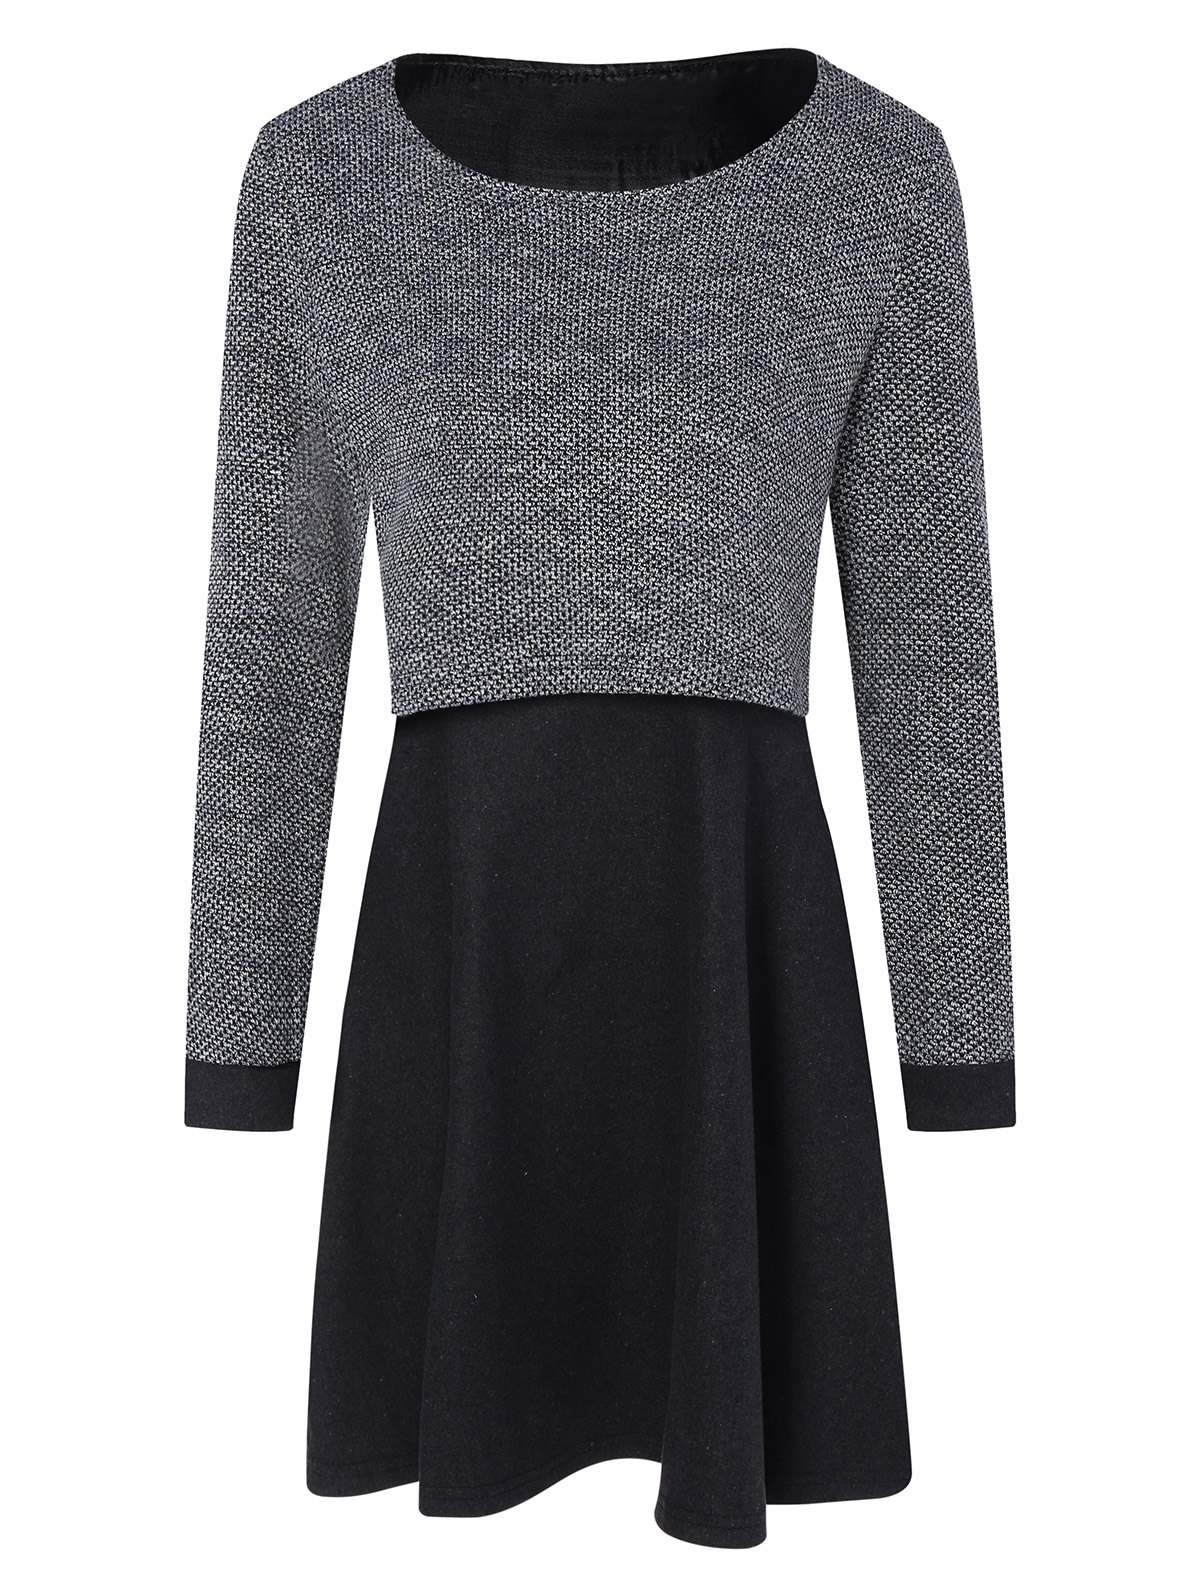 Long Sleeves Knitted Panel Popover DressWomen<br><br><br>Size: M<br>Color: BLACK AND GREY